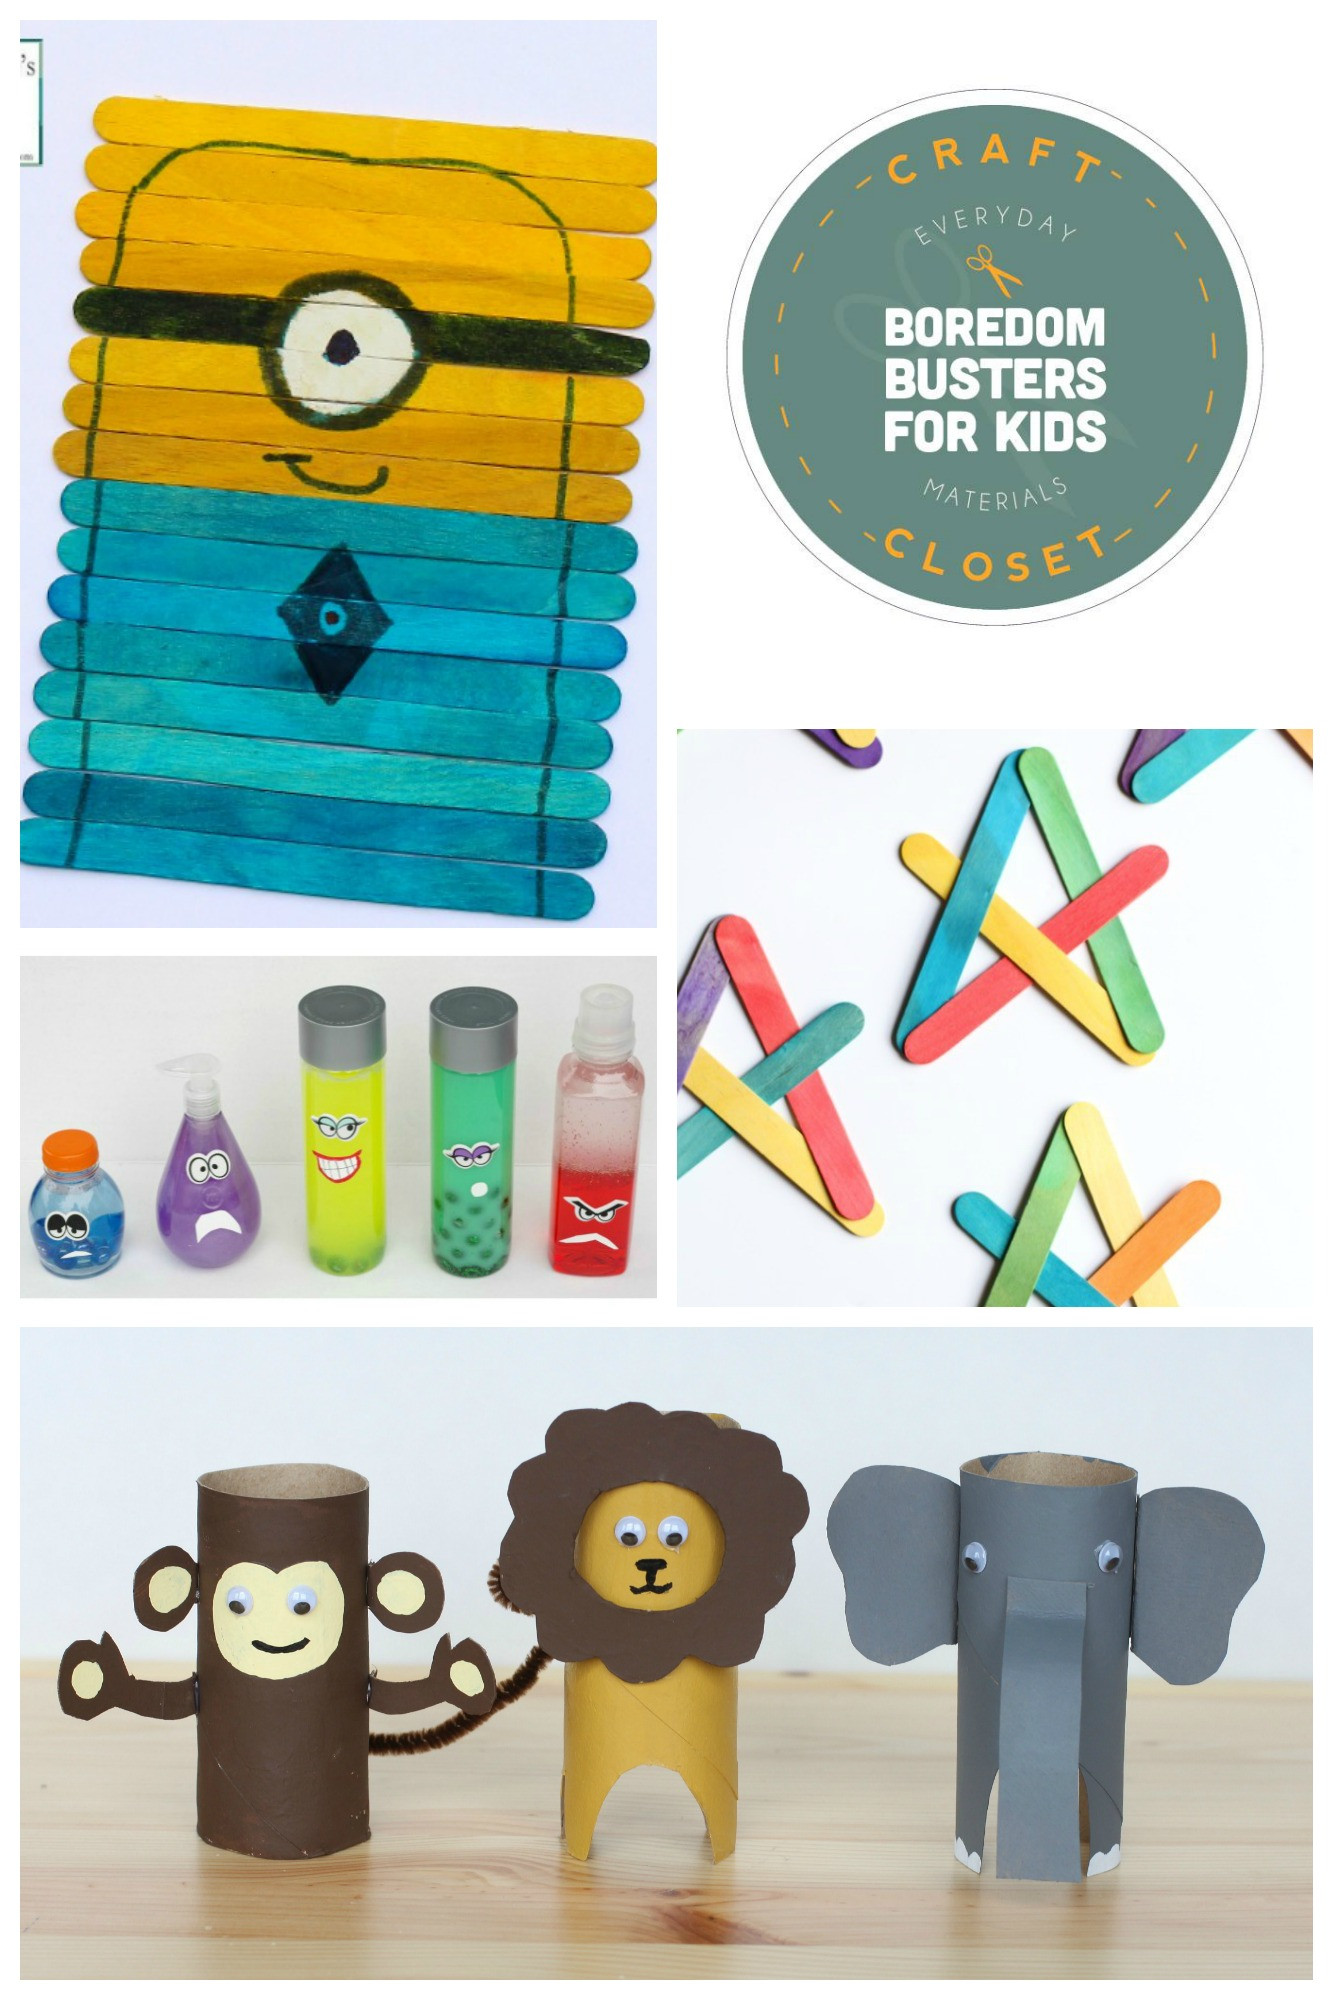 Fun Kids Projects  25 Crafts and Activities for Kids Using Everyday